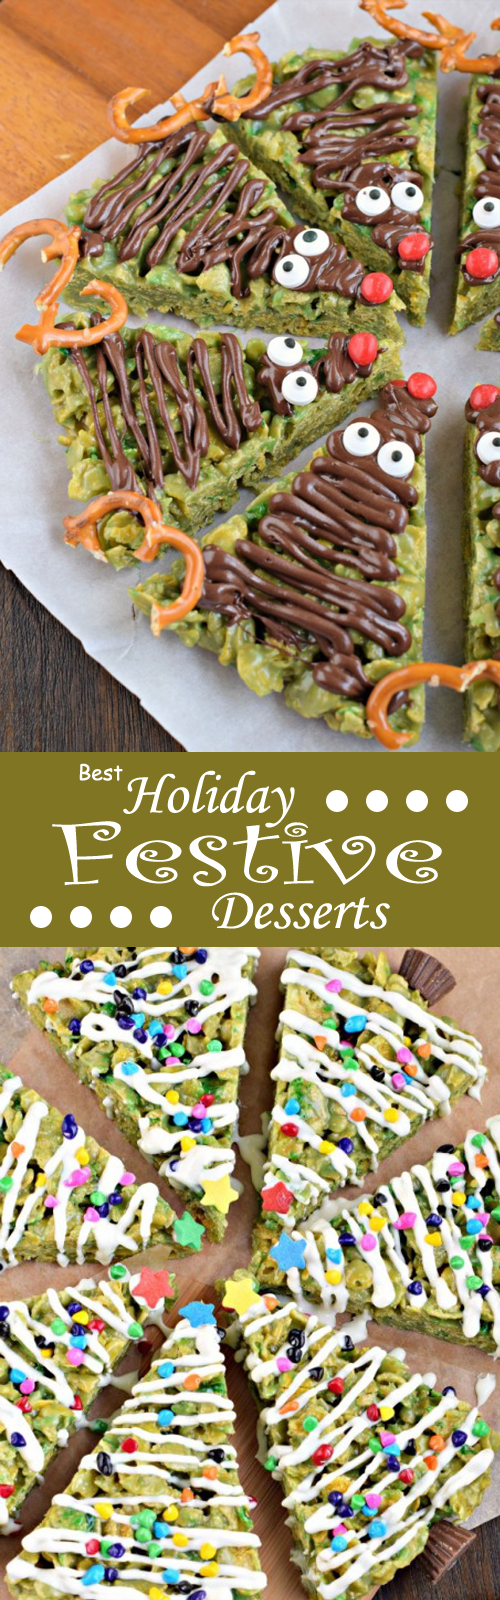 Best Holiday Festive Desserts